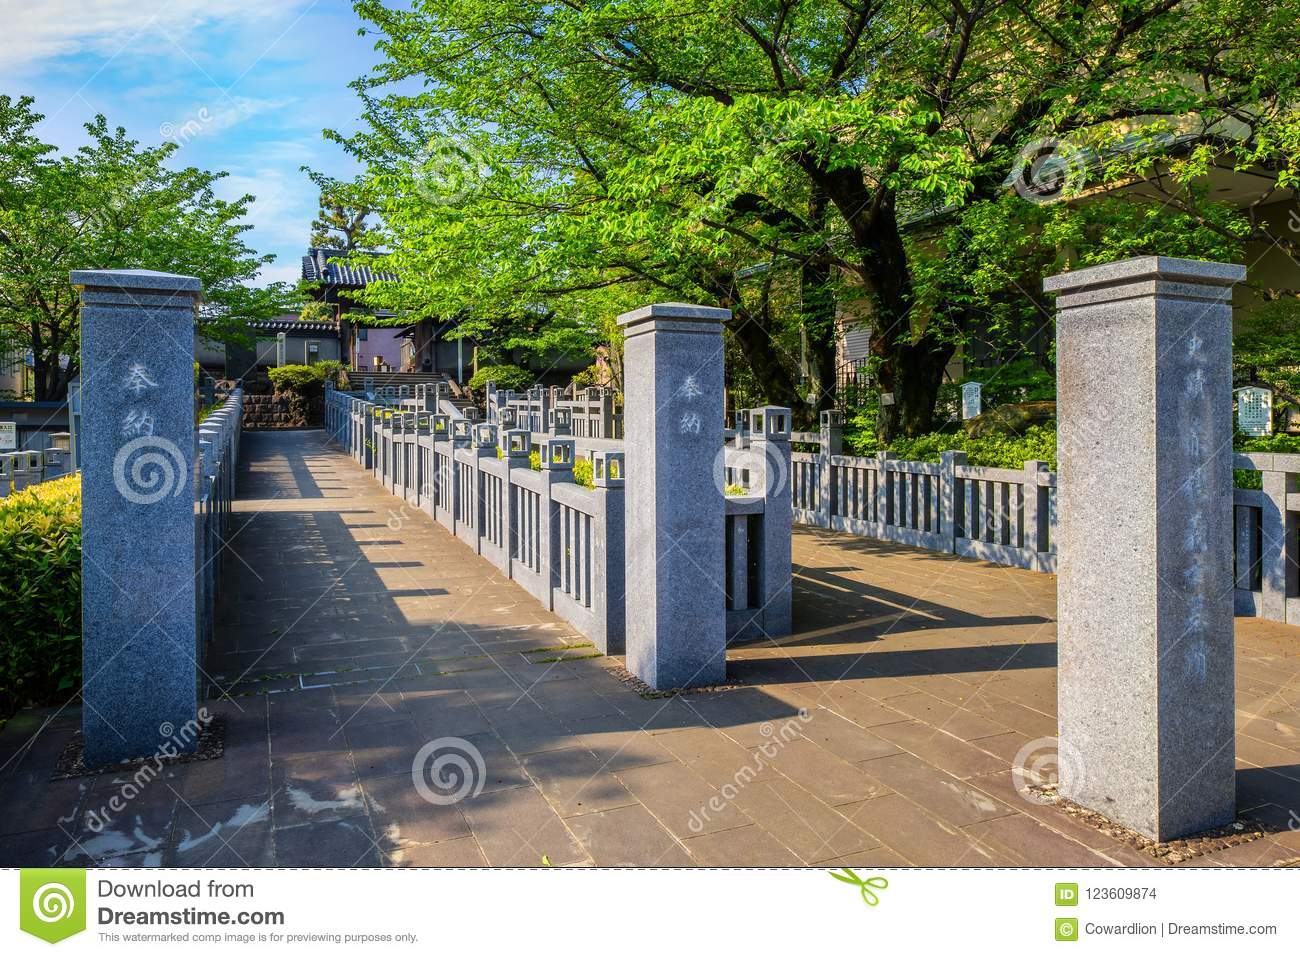 The Way To The Grave Of 47 Ronin At Sengakuji Temple In Tokyo, Japan